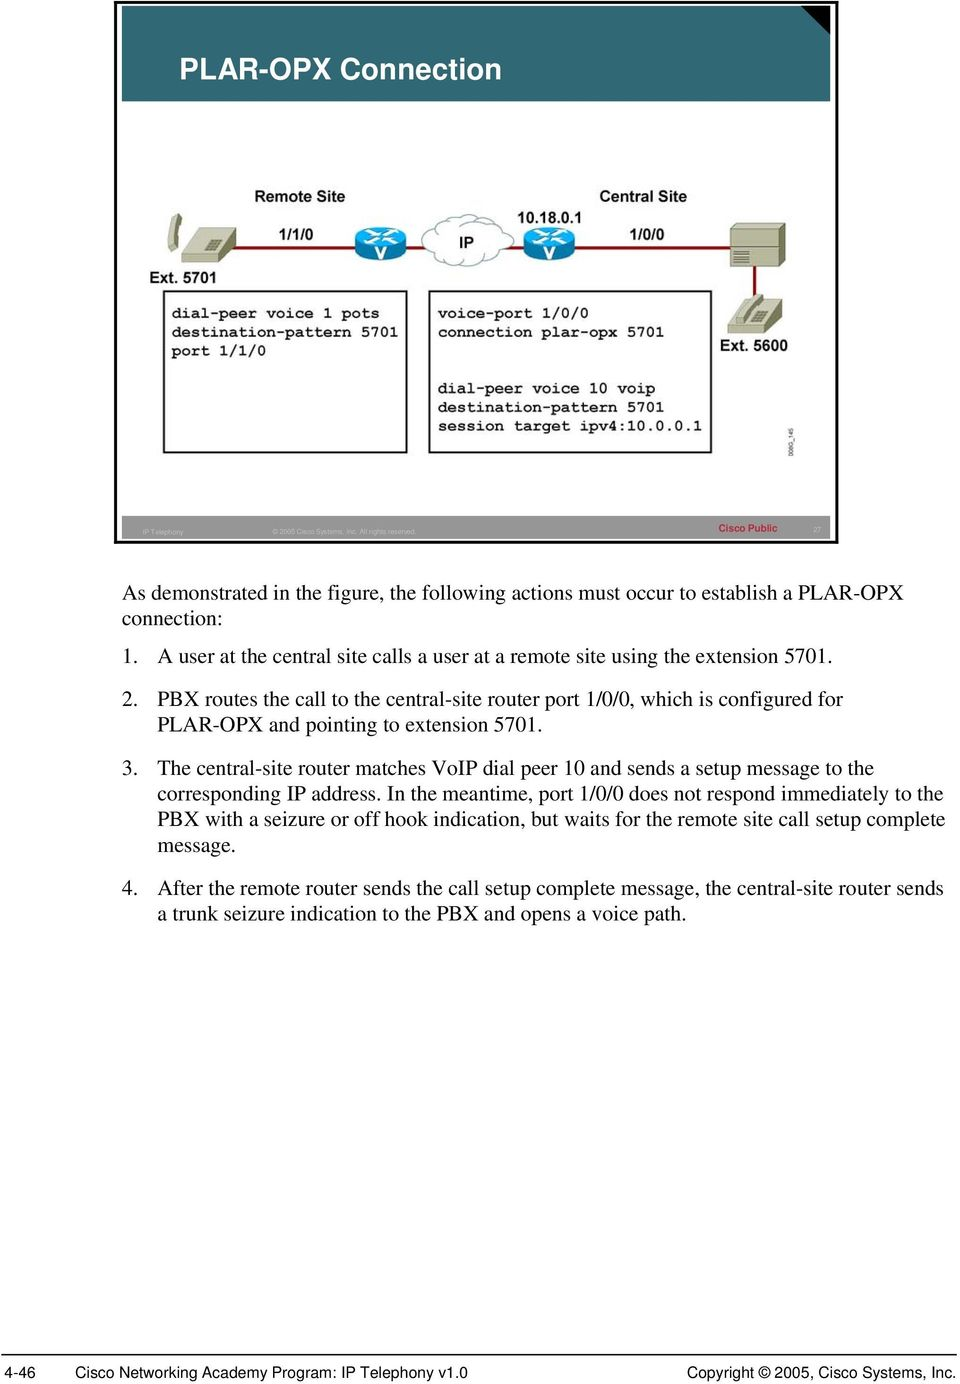 PBX routes the call to the central-site router port 1/0/0, which is configured for PLAR-OPX and pointing to extension 5701. 3.